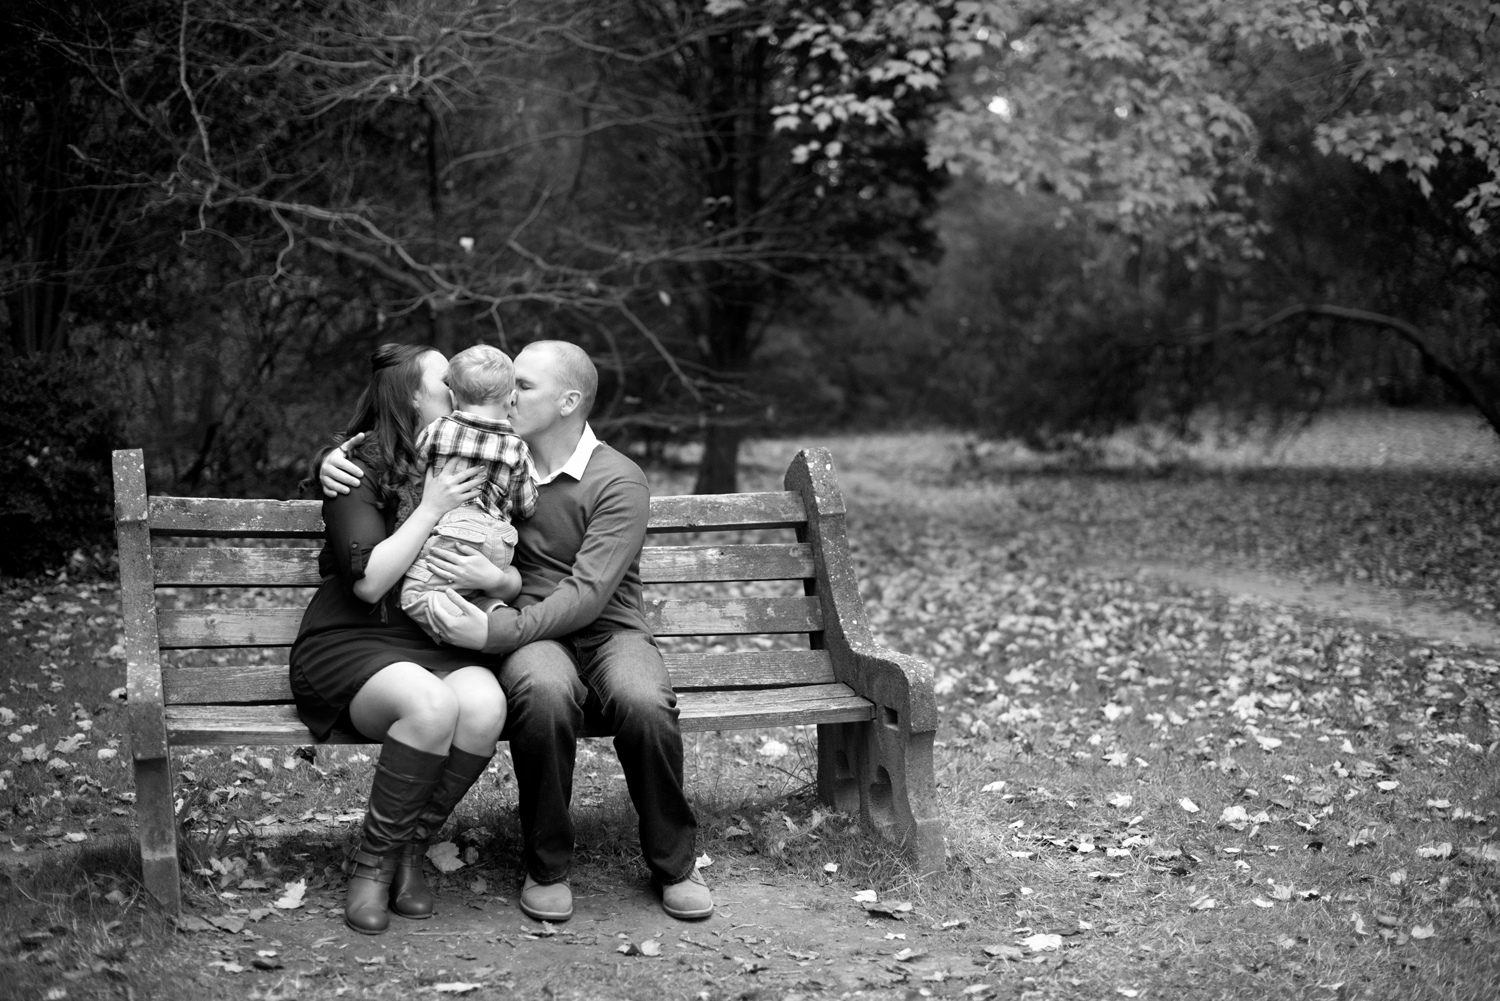 Mom and dad kiss baby on a park bench for fall family pictures